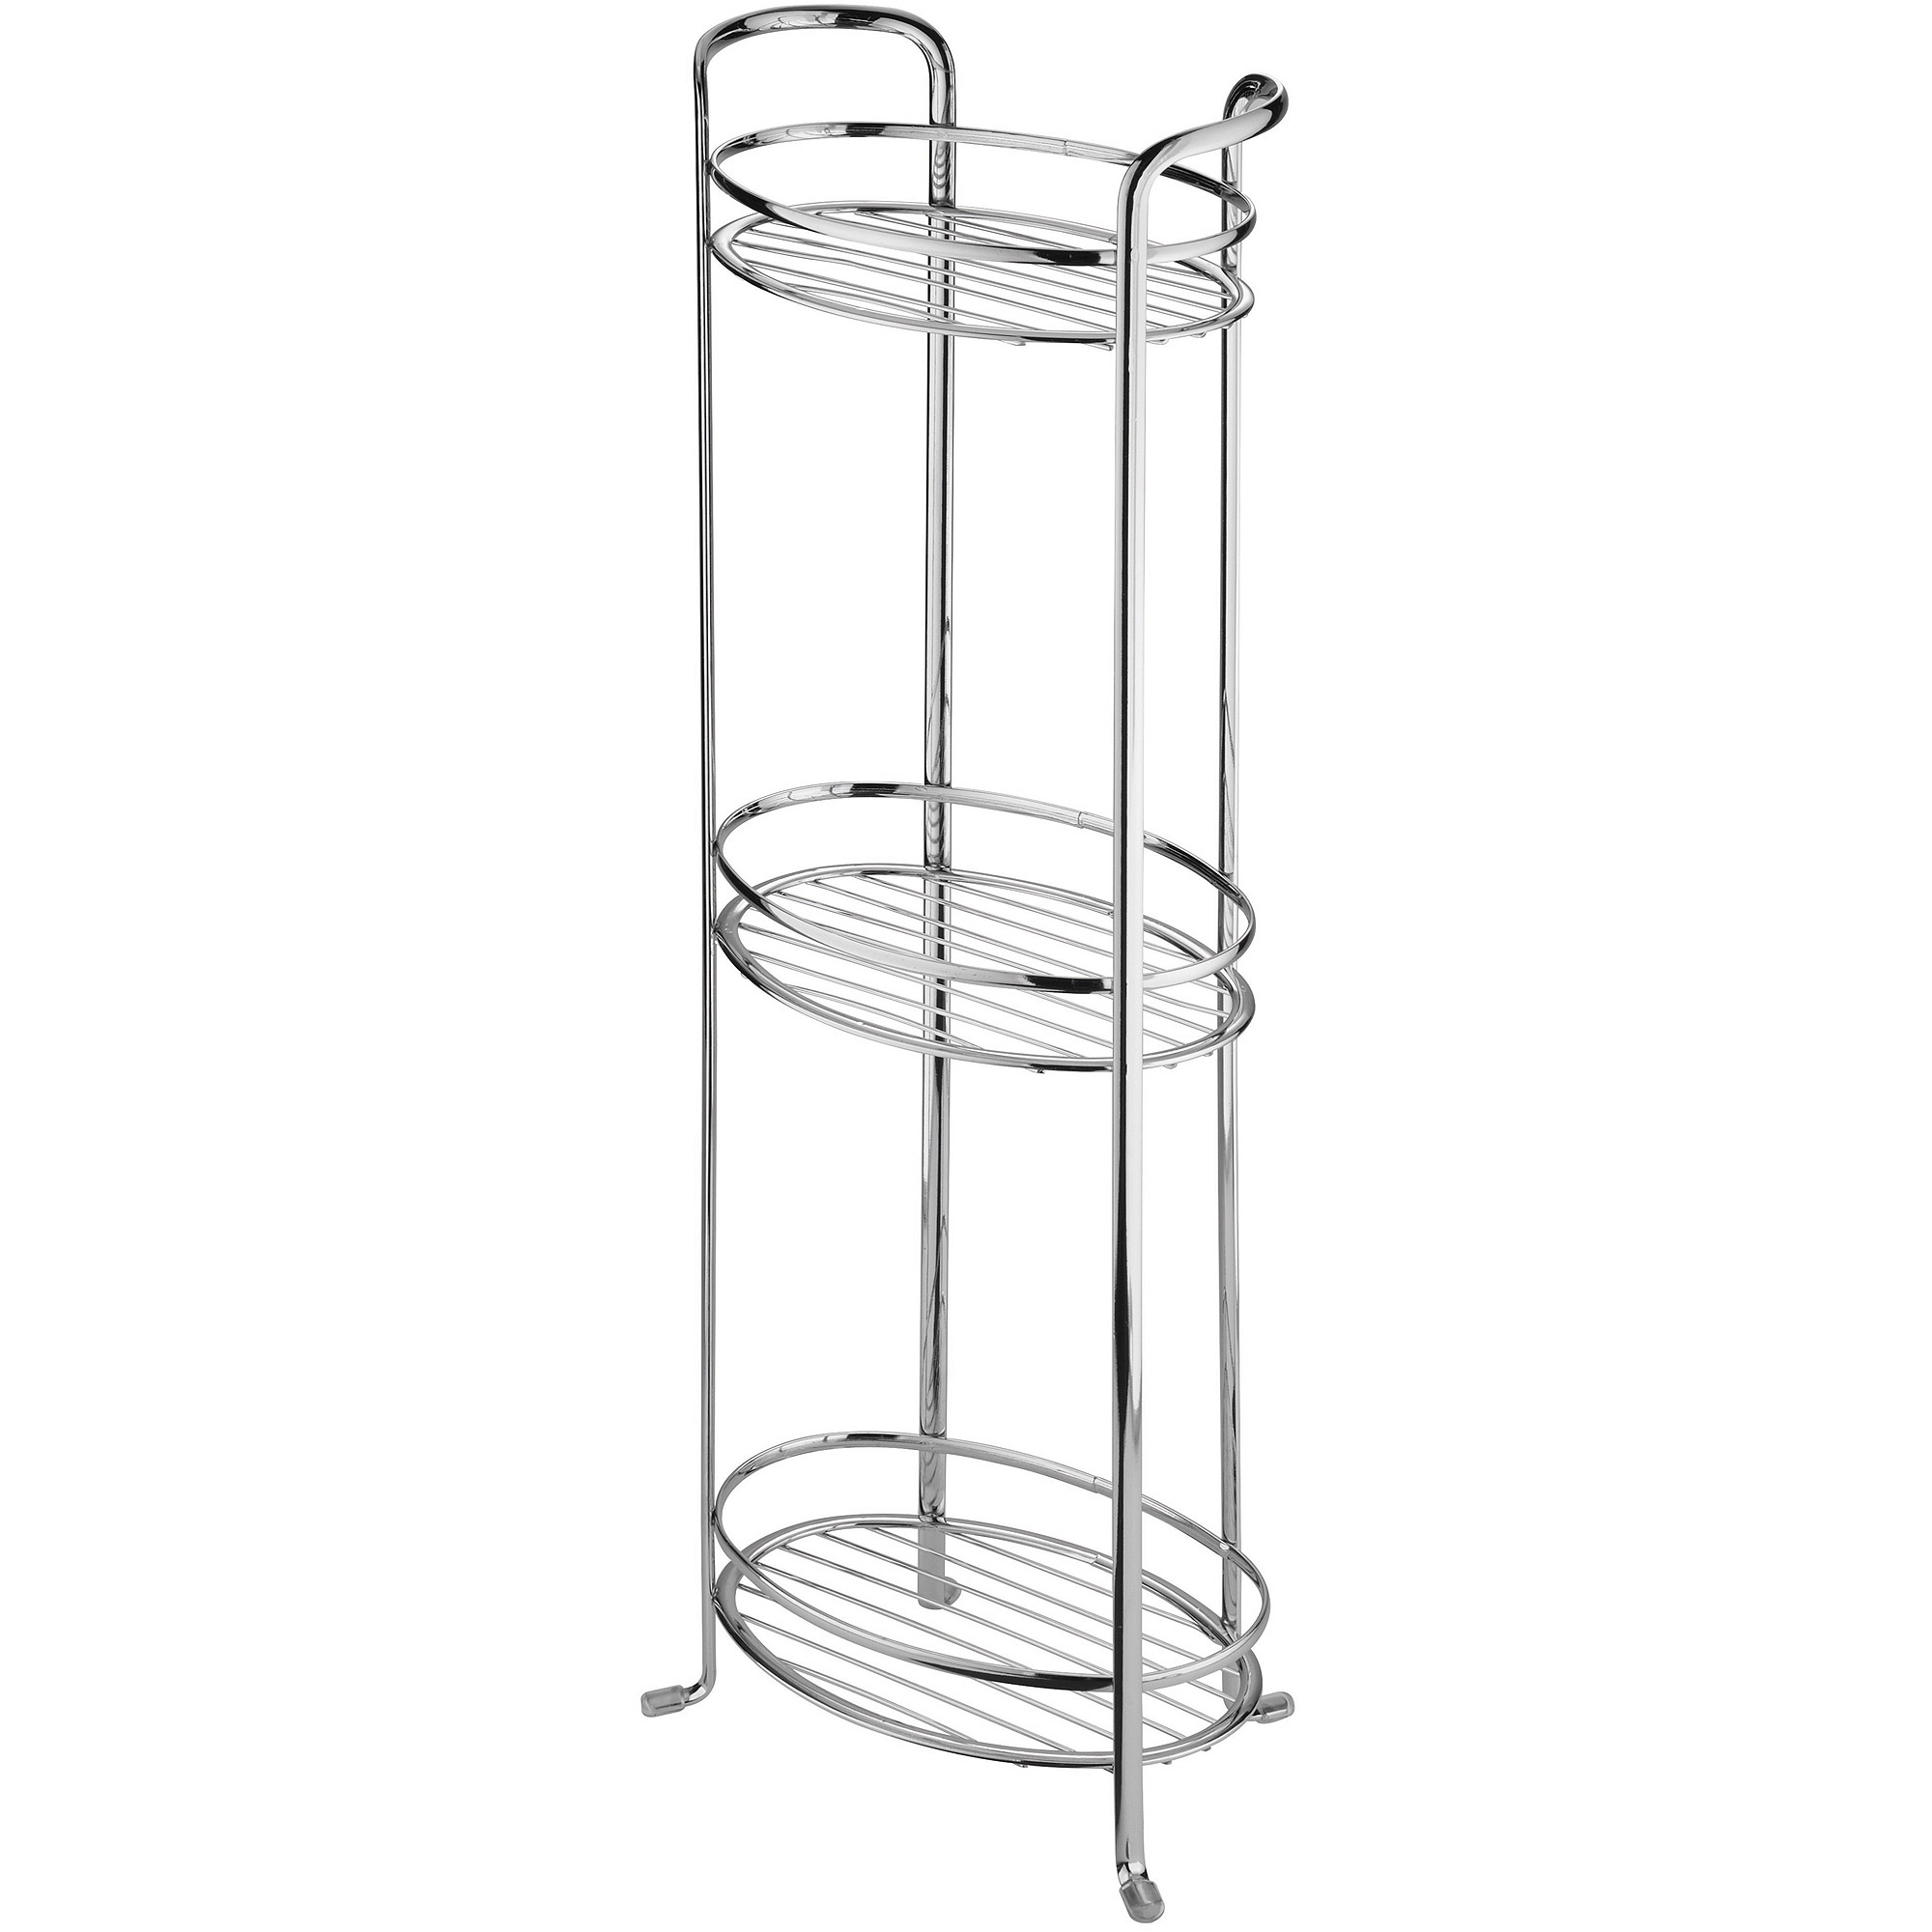 Interdesign Axis Free Standing Bathroom Storage Shelves For Towels Soap Candles Tissues Lotion Accessories 3 Tier Chrome regarding dimensions 2000 X 2000